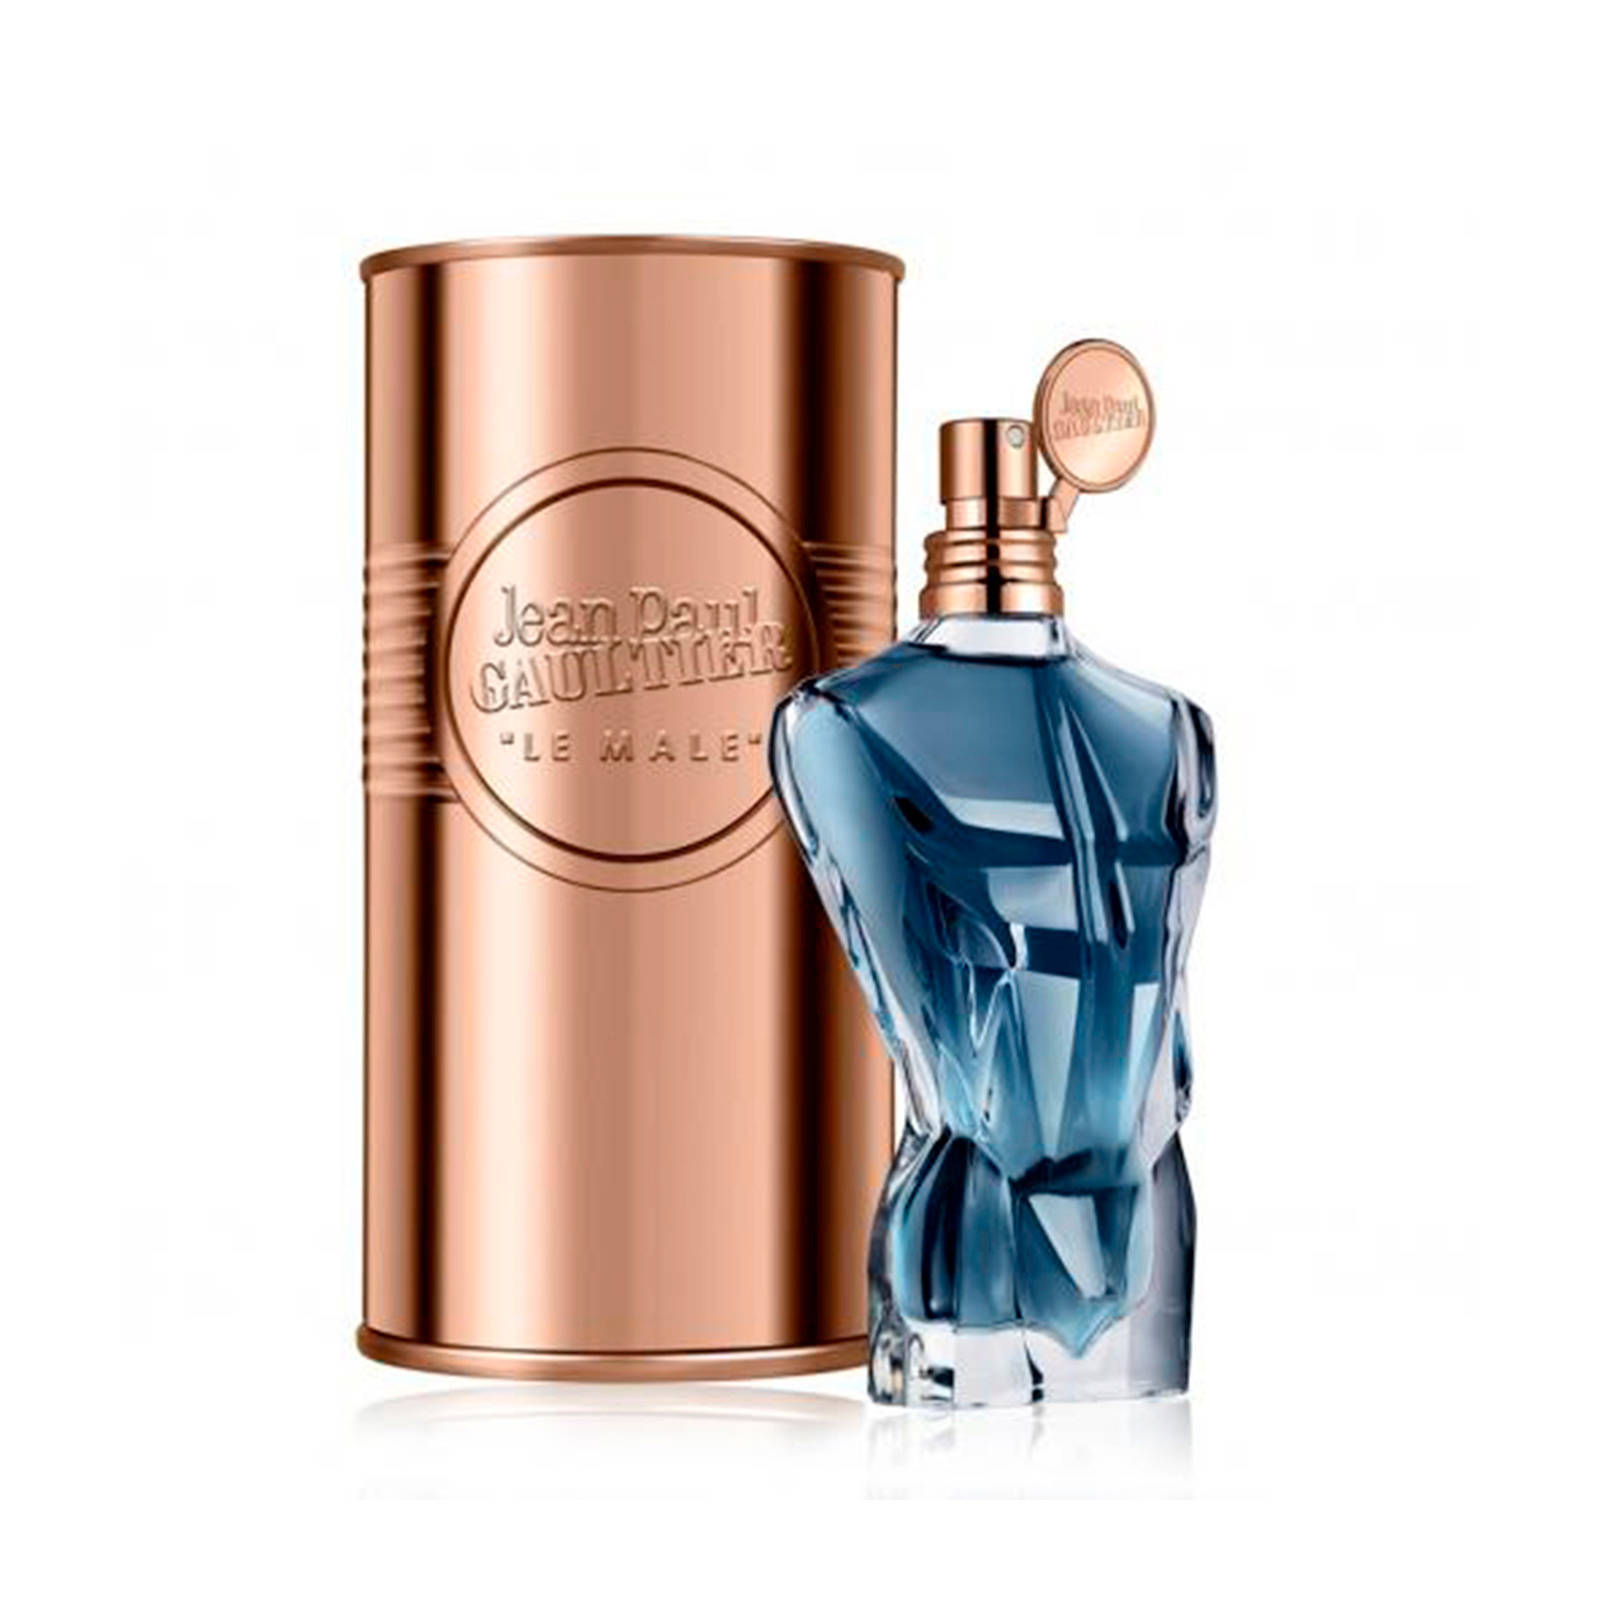 Eau De Le Ml Essence 75 Male Parfum rodCWBxe